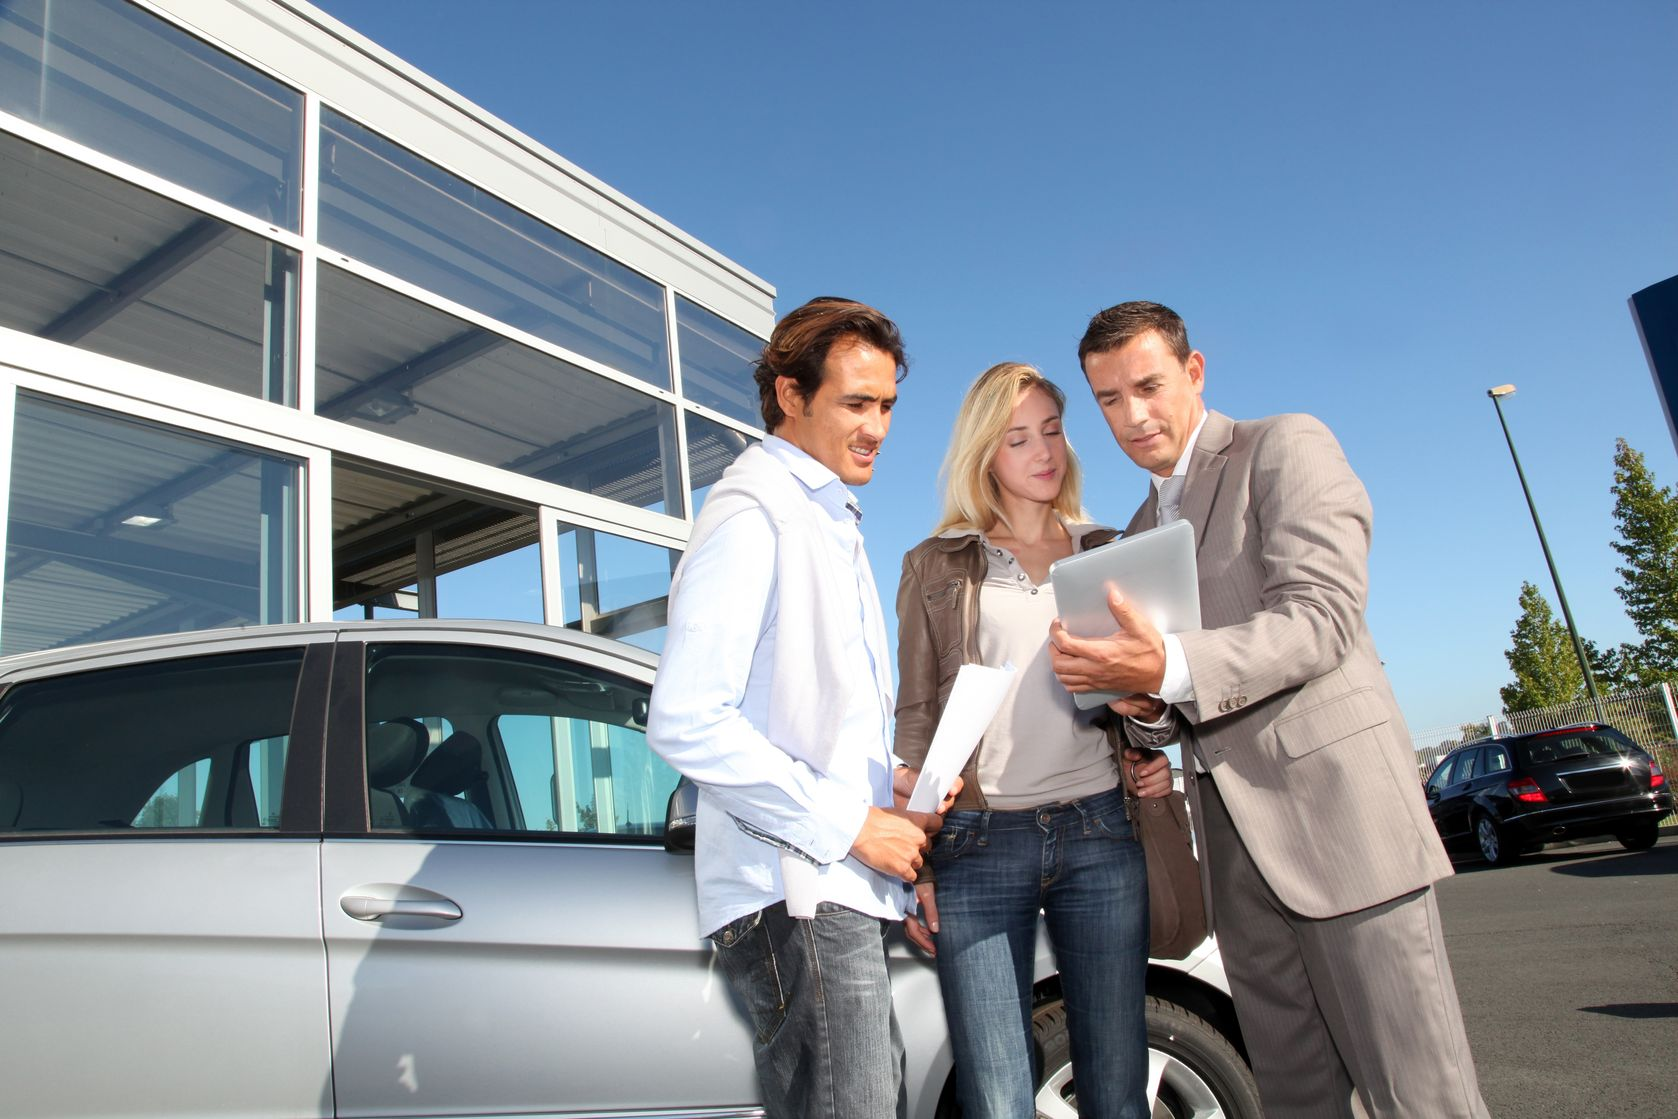 Rancho Mirage Auto Dealers Insurance